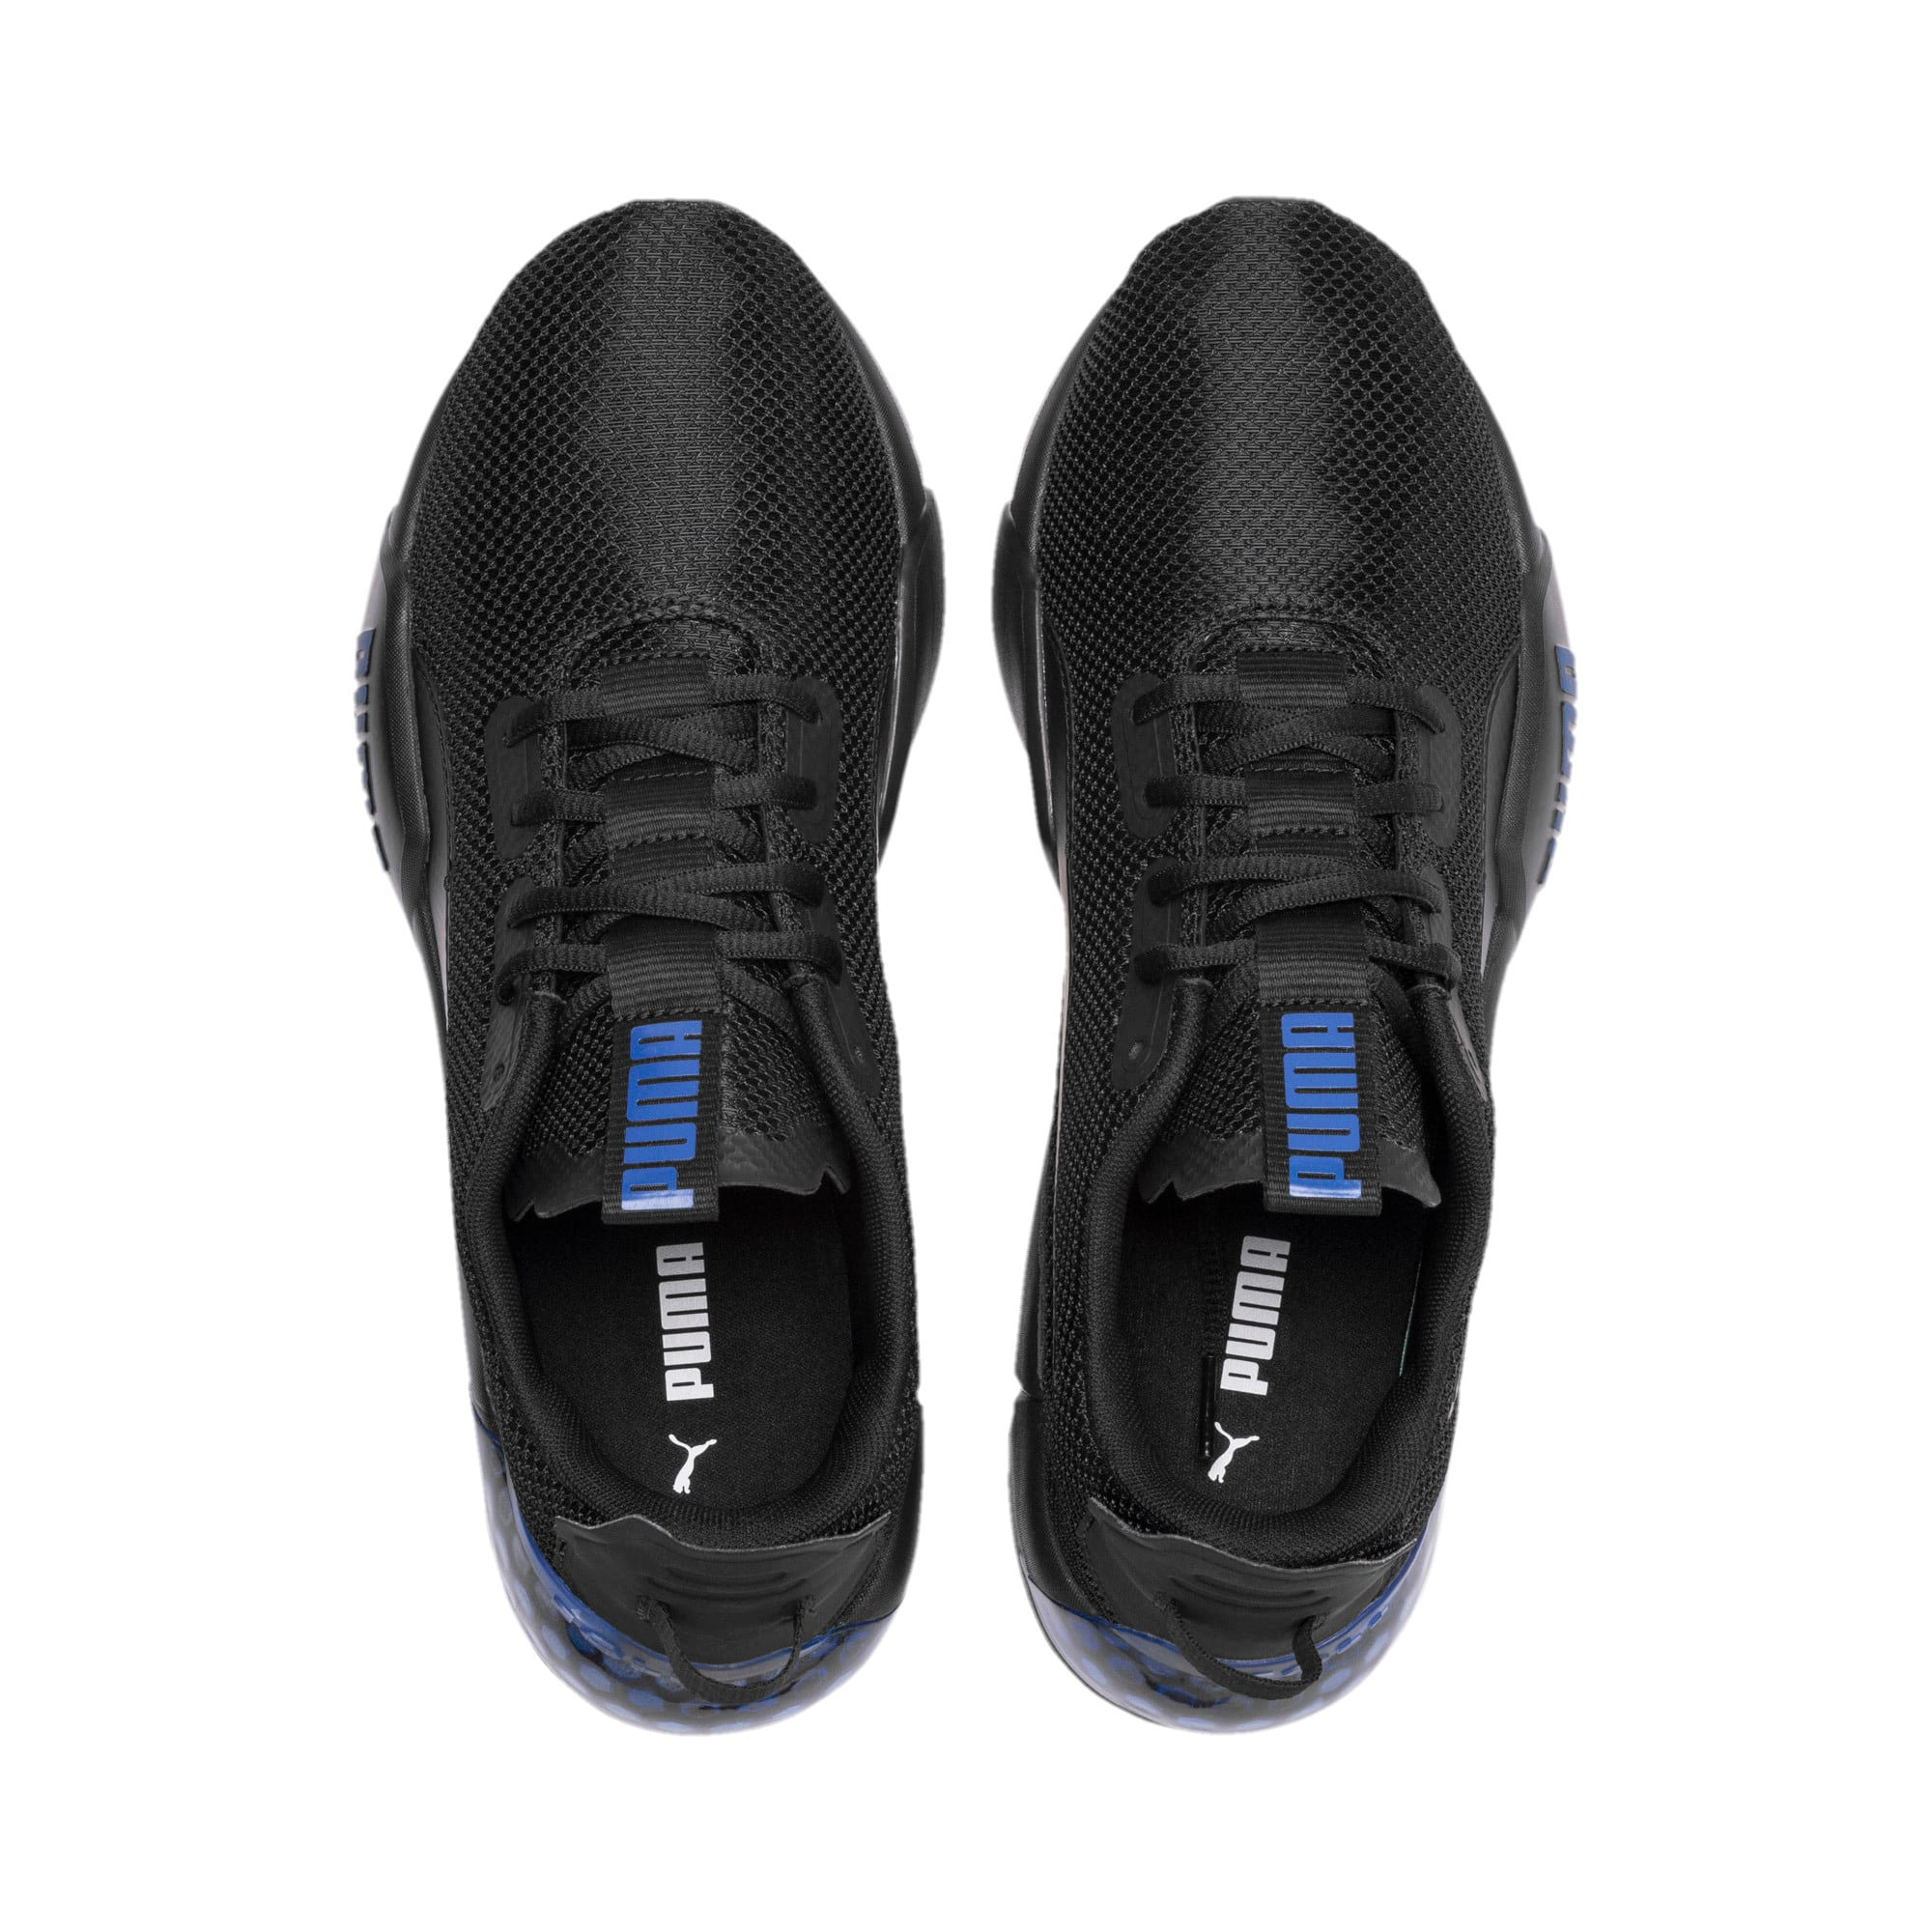 Thumbnail 7 of CELL Phase Men's Training Shoes, Puma Black-Galaxy Blue, medium